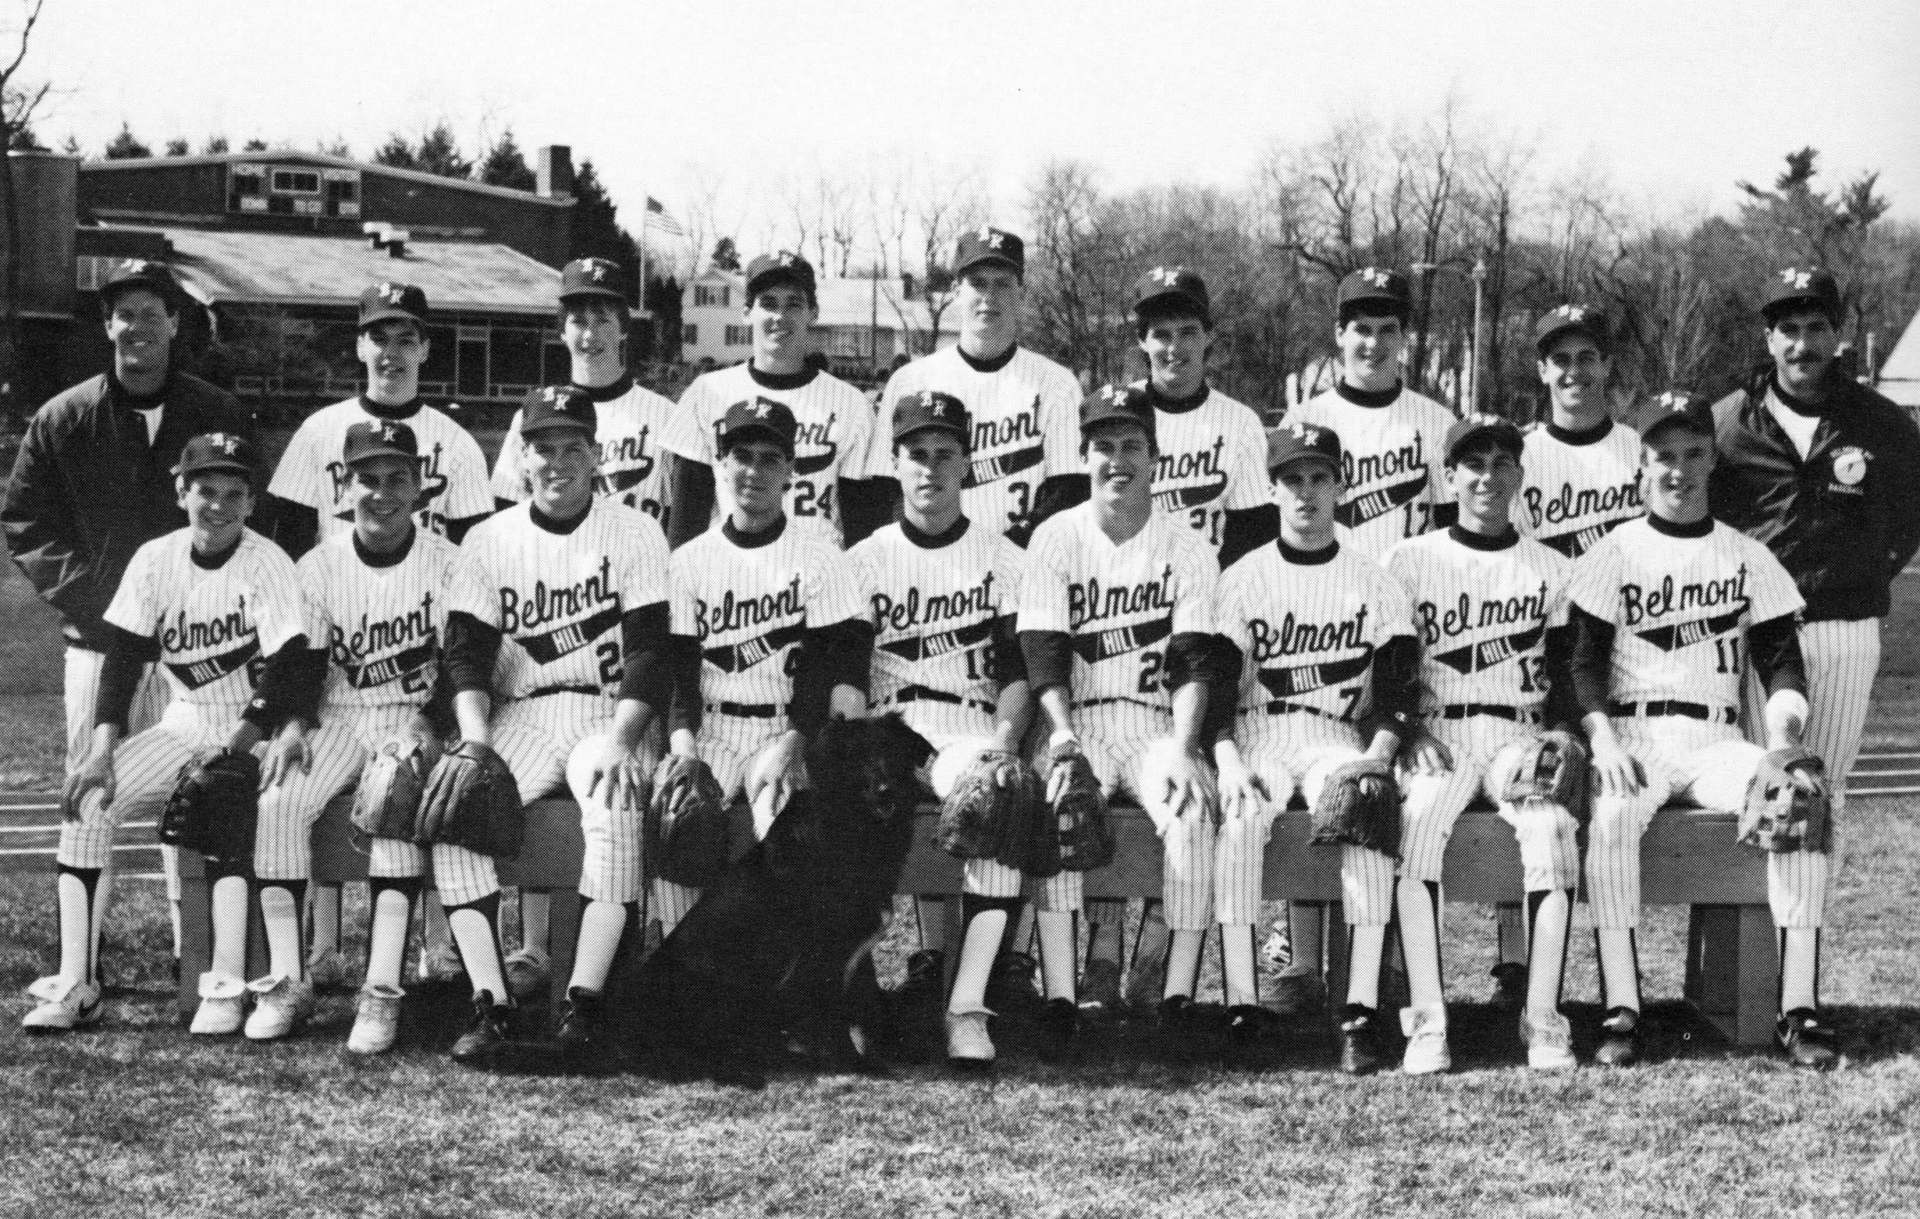 Top Row: Brownell,McHue, Plourde, Keany, JOnes, Blank Kenneally. Schafer Front Row, Casey, Southmayd, Silk, Cimeno, Coady, Madden, Lynch, Bines, Hardin